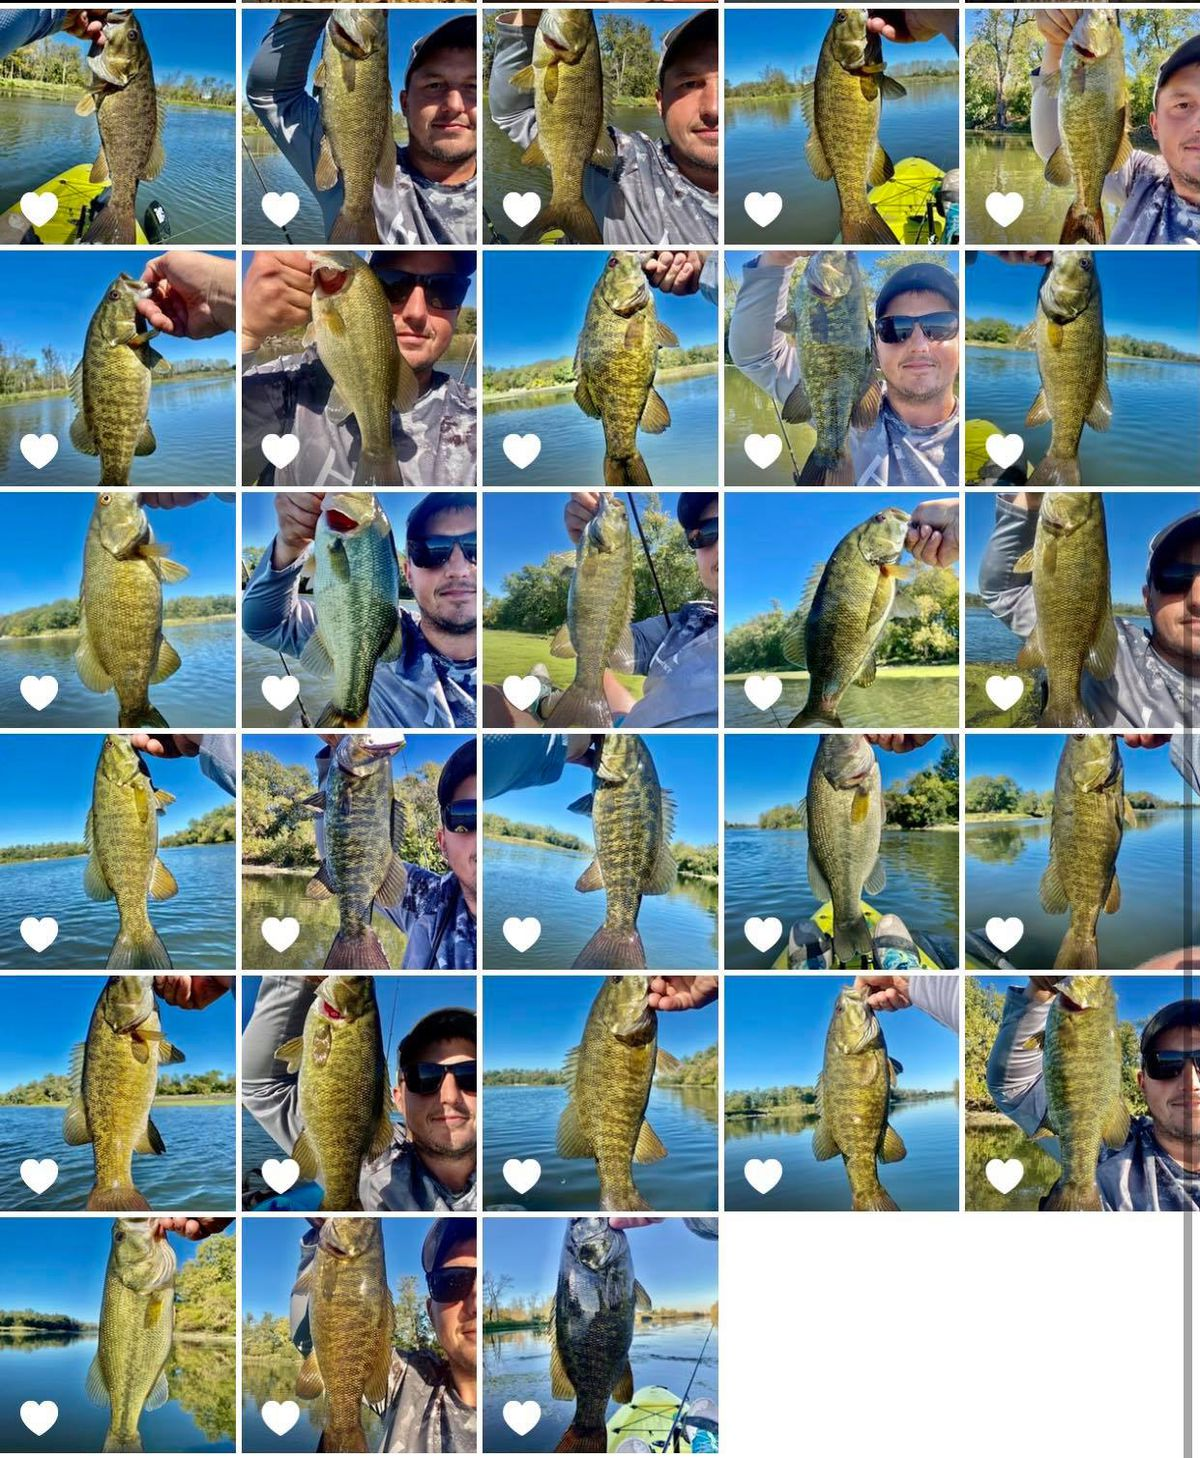 A collage of fall fishing on the Des Plaines River. Provided by Jonny Pitelka